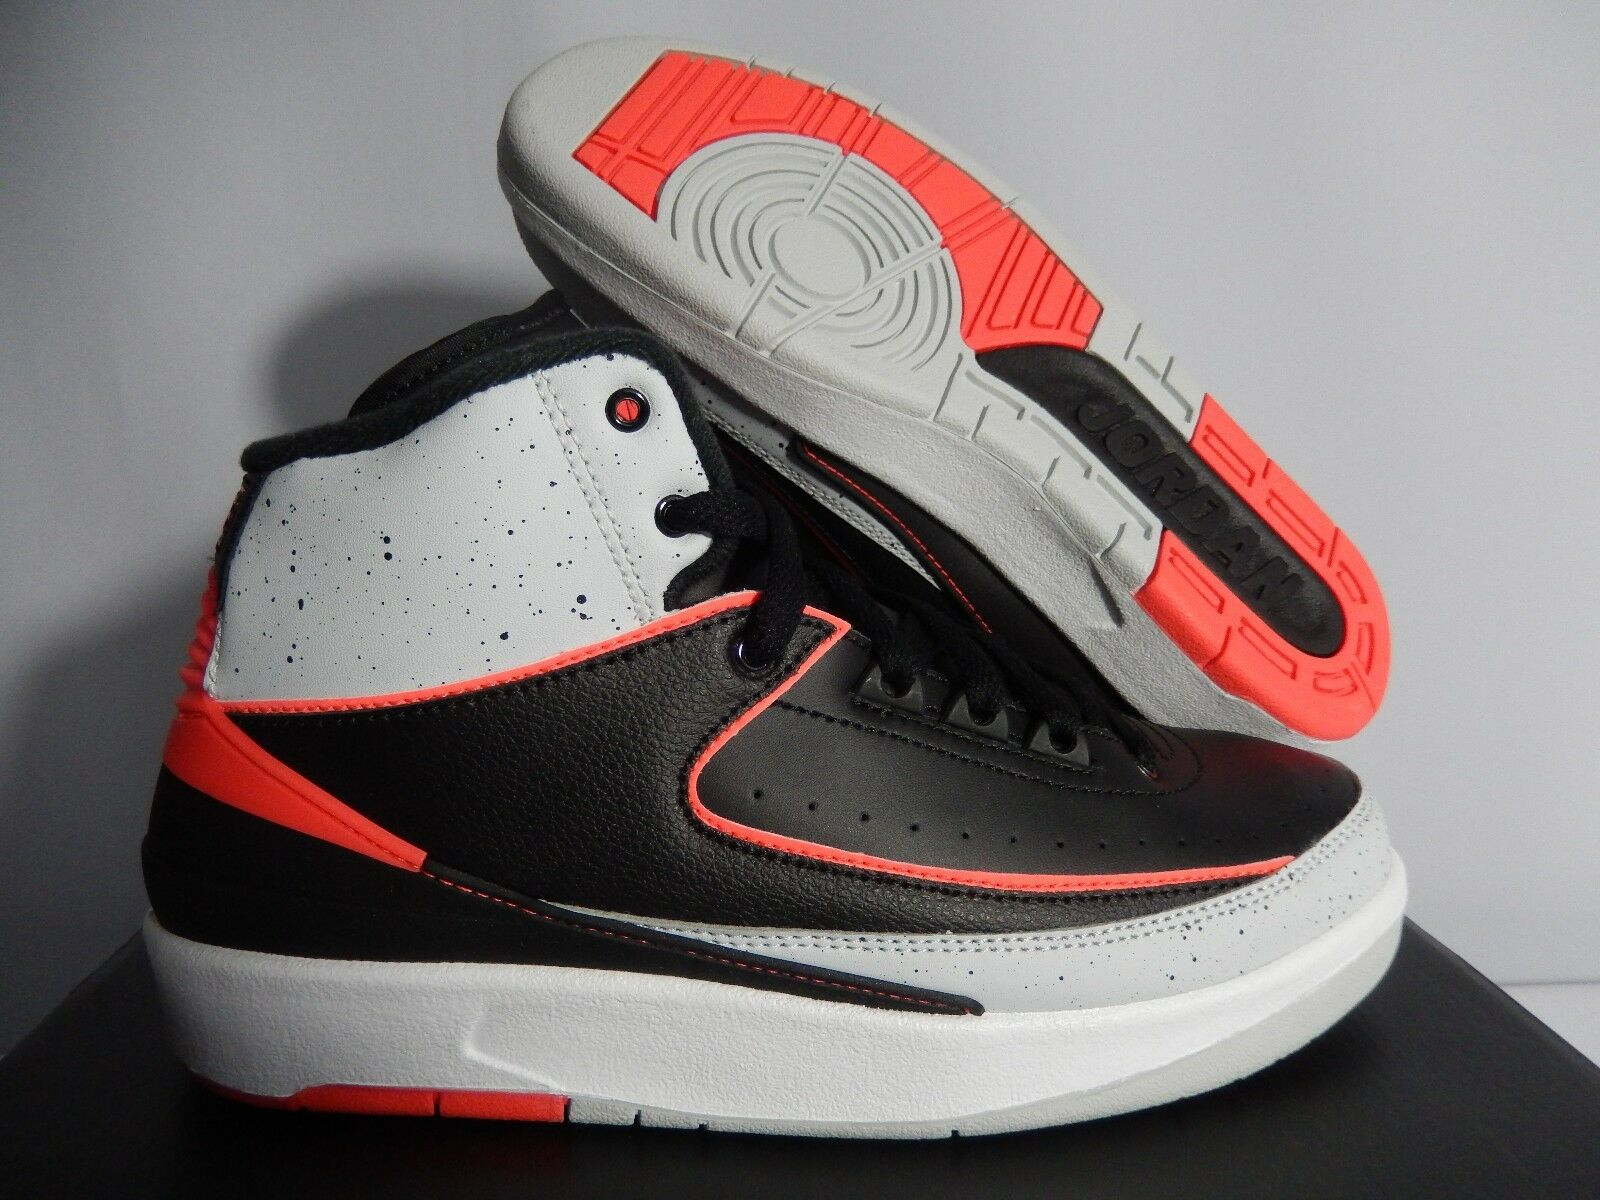 NIKE AIR JORDAN 2 RETRO RETRO RETRO BG BLACK-INFRARED-WHITE SZ 6Y-WOMENS SZ 7.5 [395718-023] a487e7